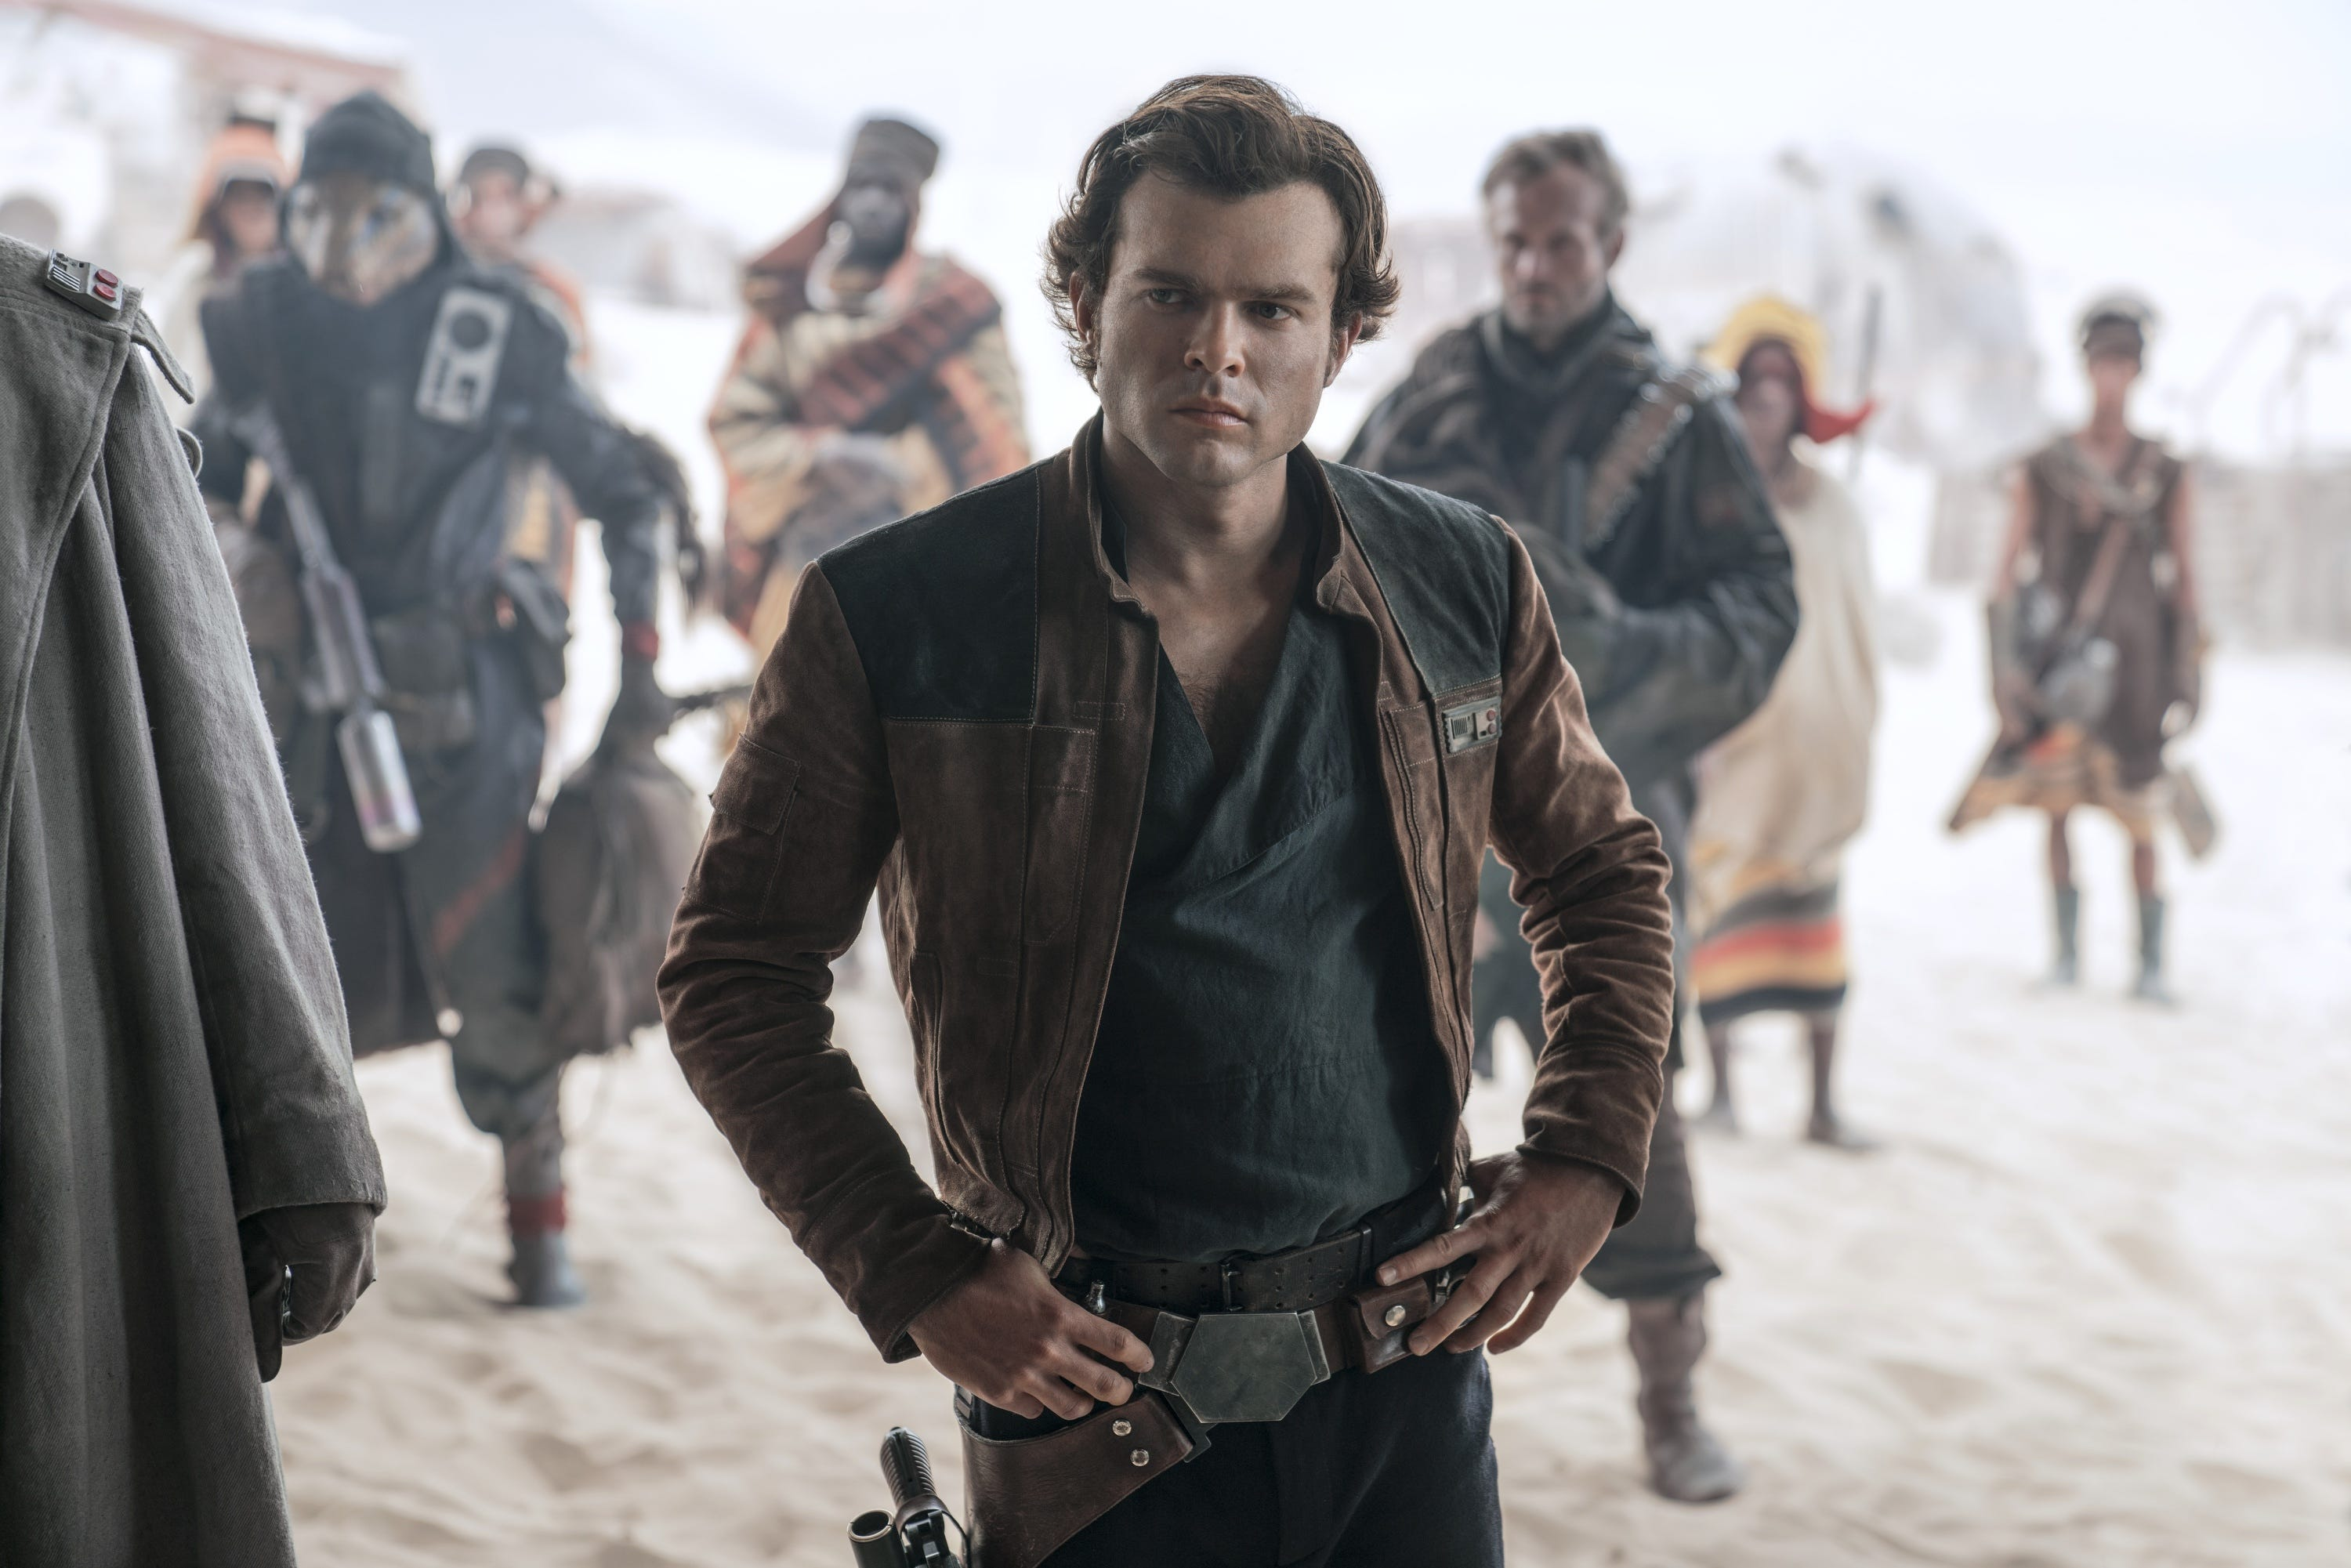 'Solo: A Star Wars Story' will premiere at Cannes Film Festival  in May